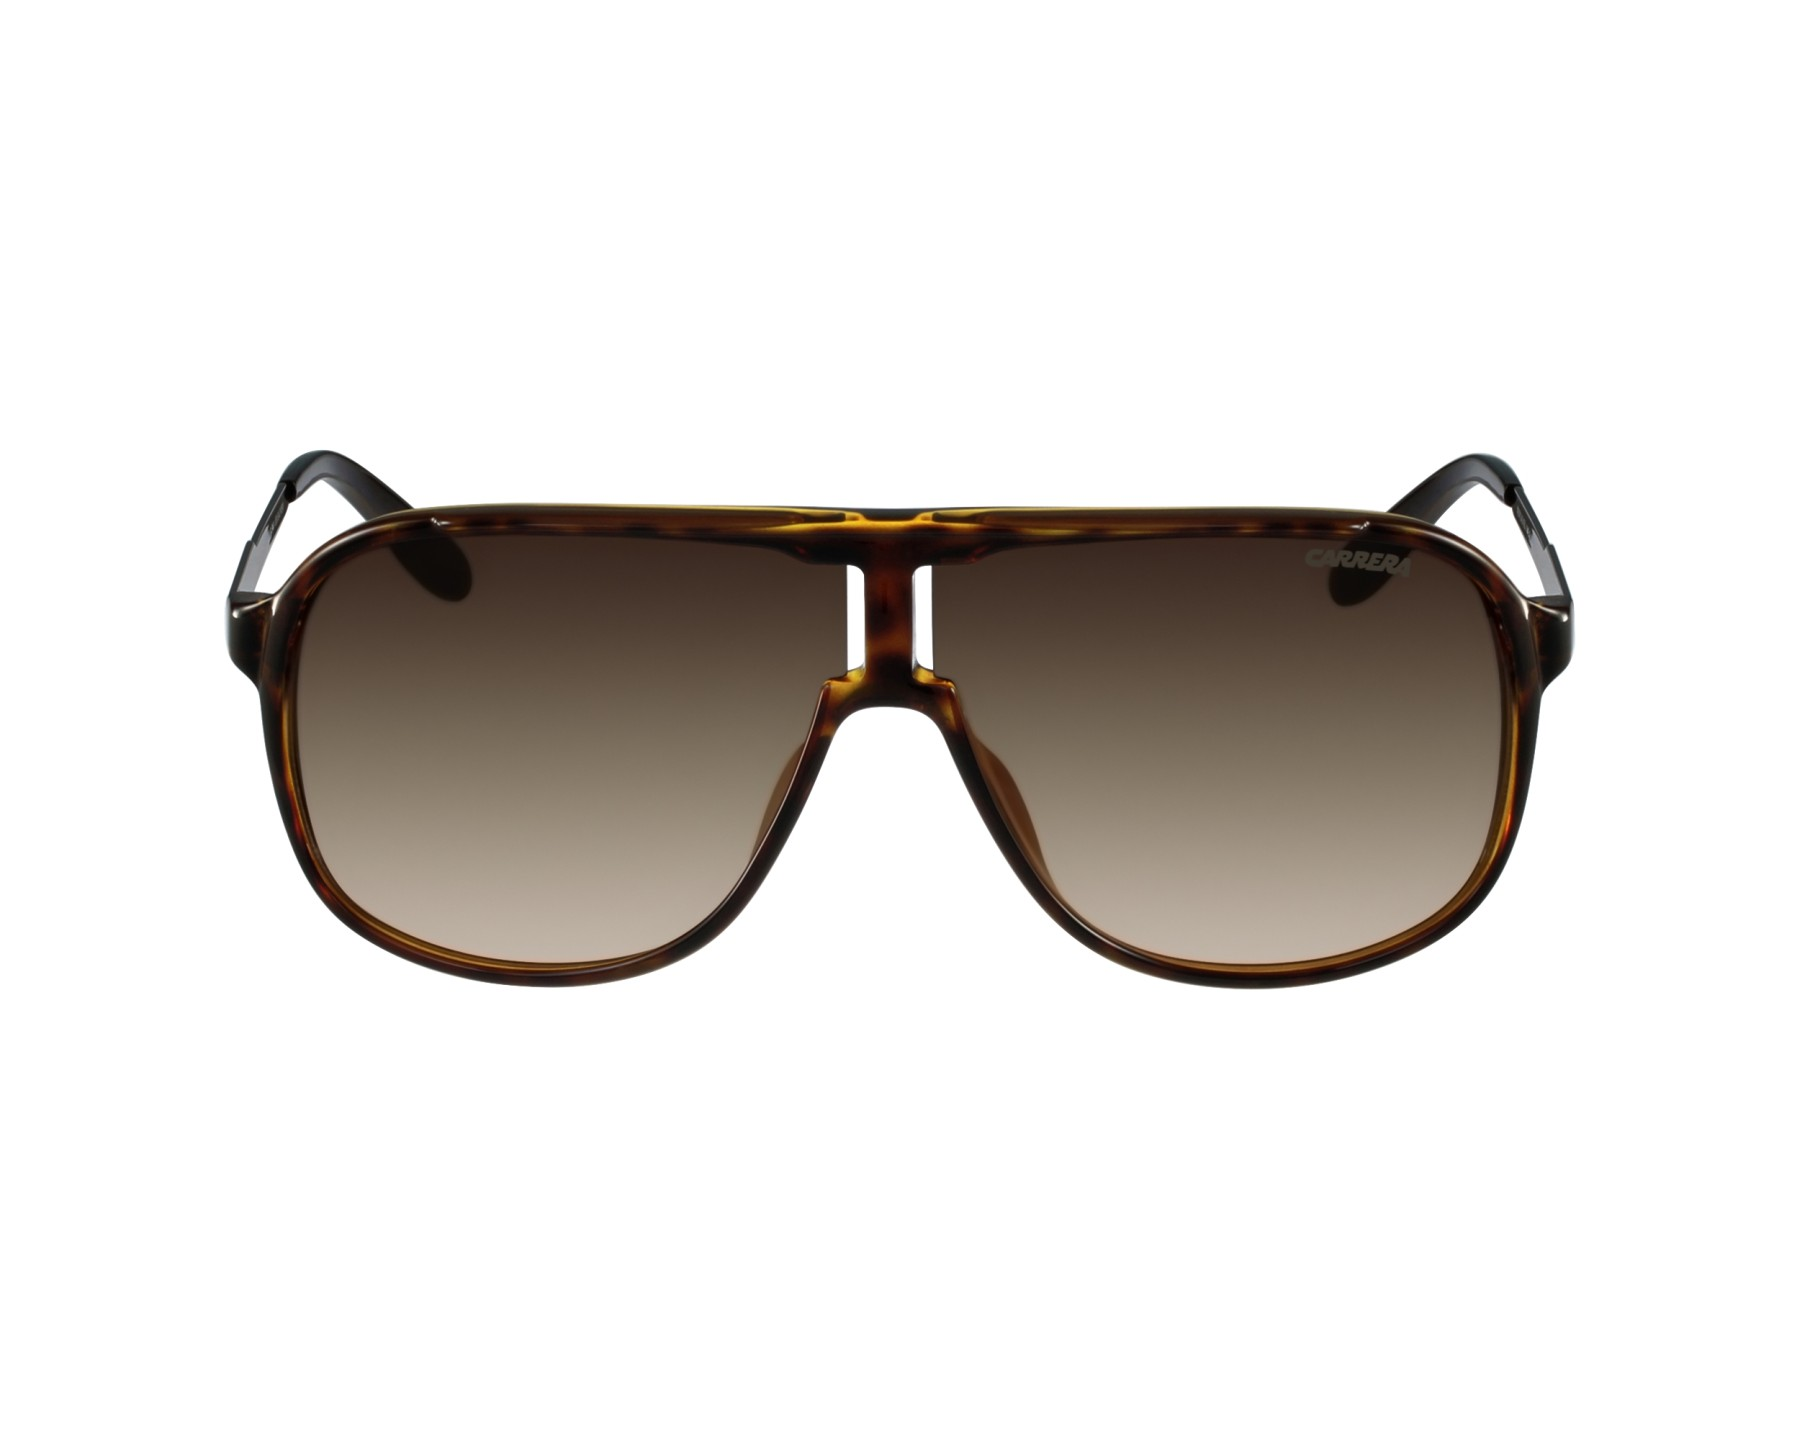 Brown Carrera Sunglasses  carrera sunglasses new safari kmej6 62 visionet